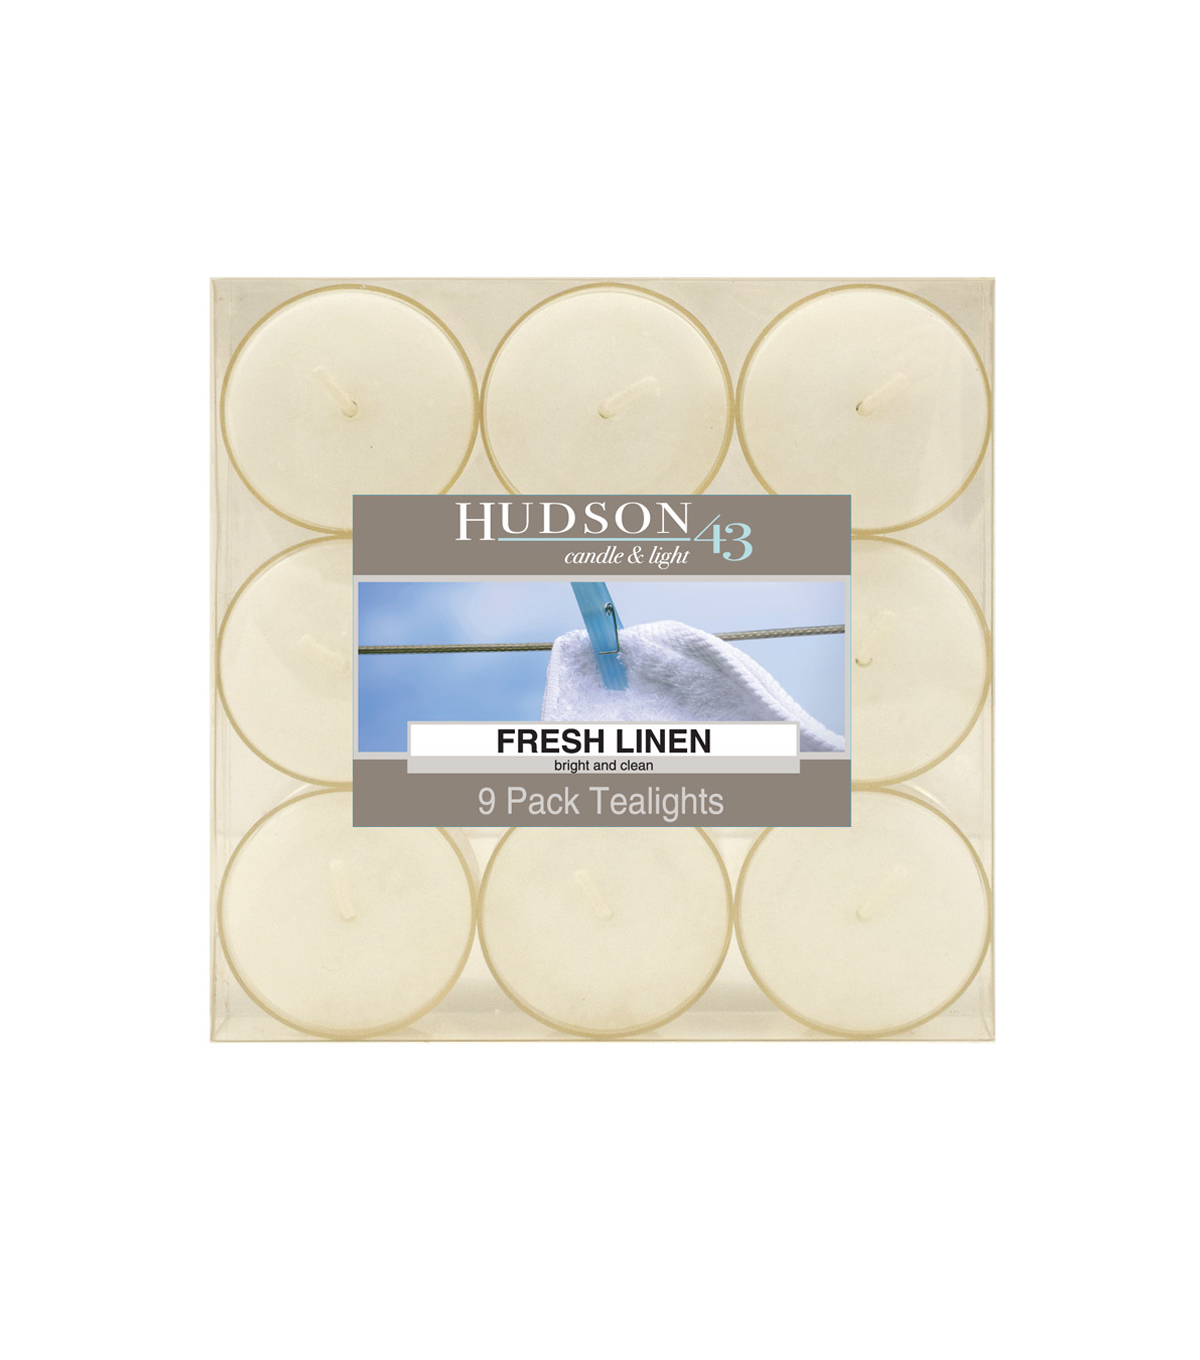 Hudson 43™ Candle & Light Collection 9 Pack Fresh Linen Tealights